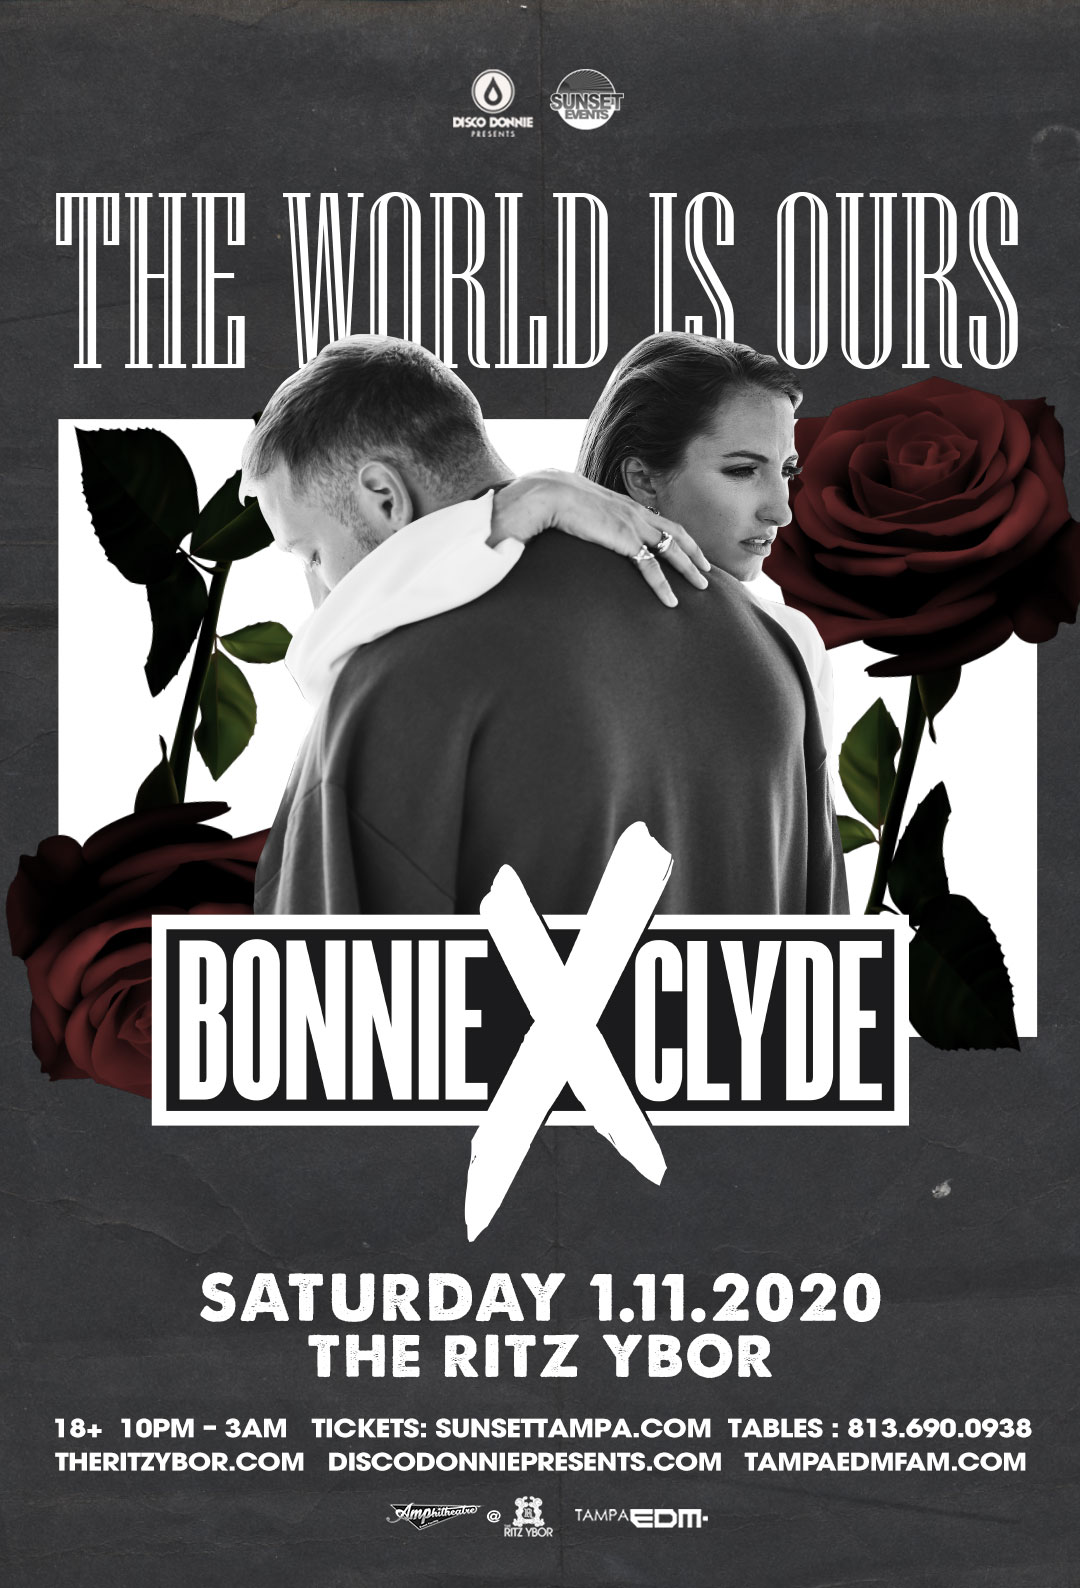 Bonnie X Clyde – The World Is Ours Tour at The RITZ Ybor – 1/11/2020